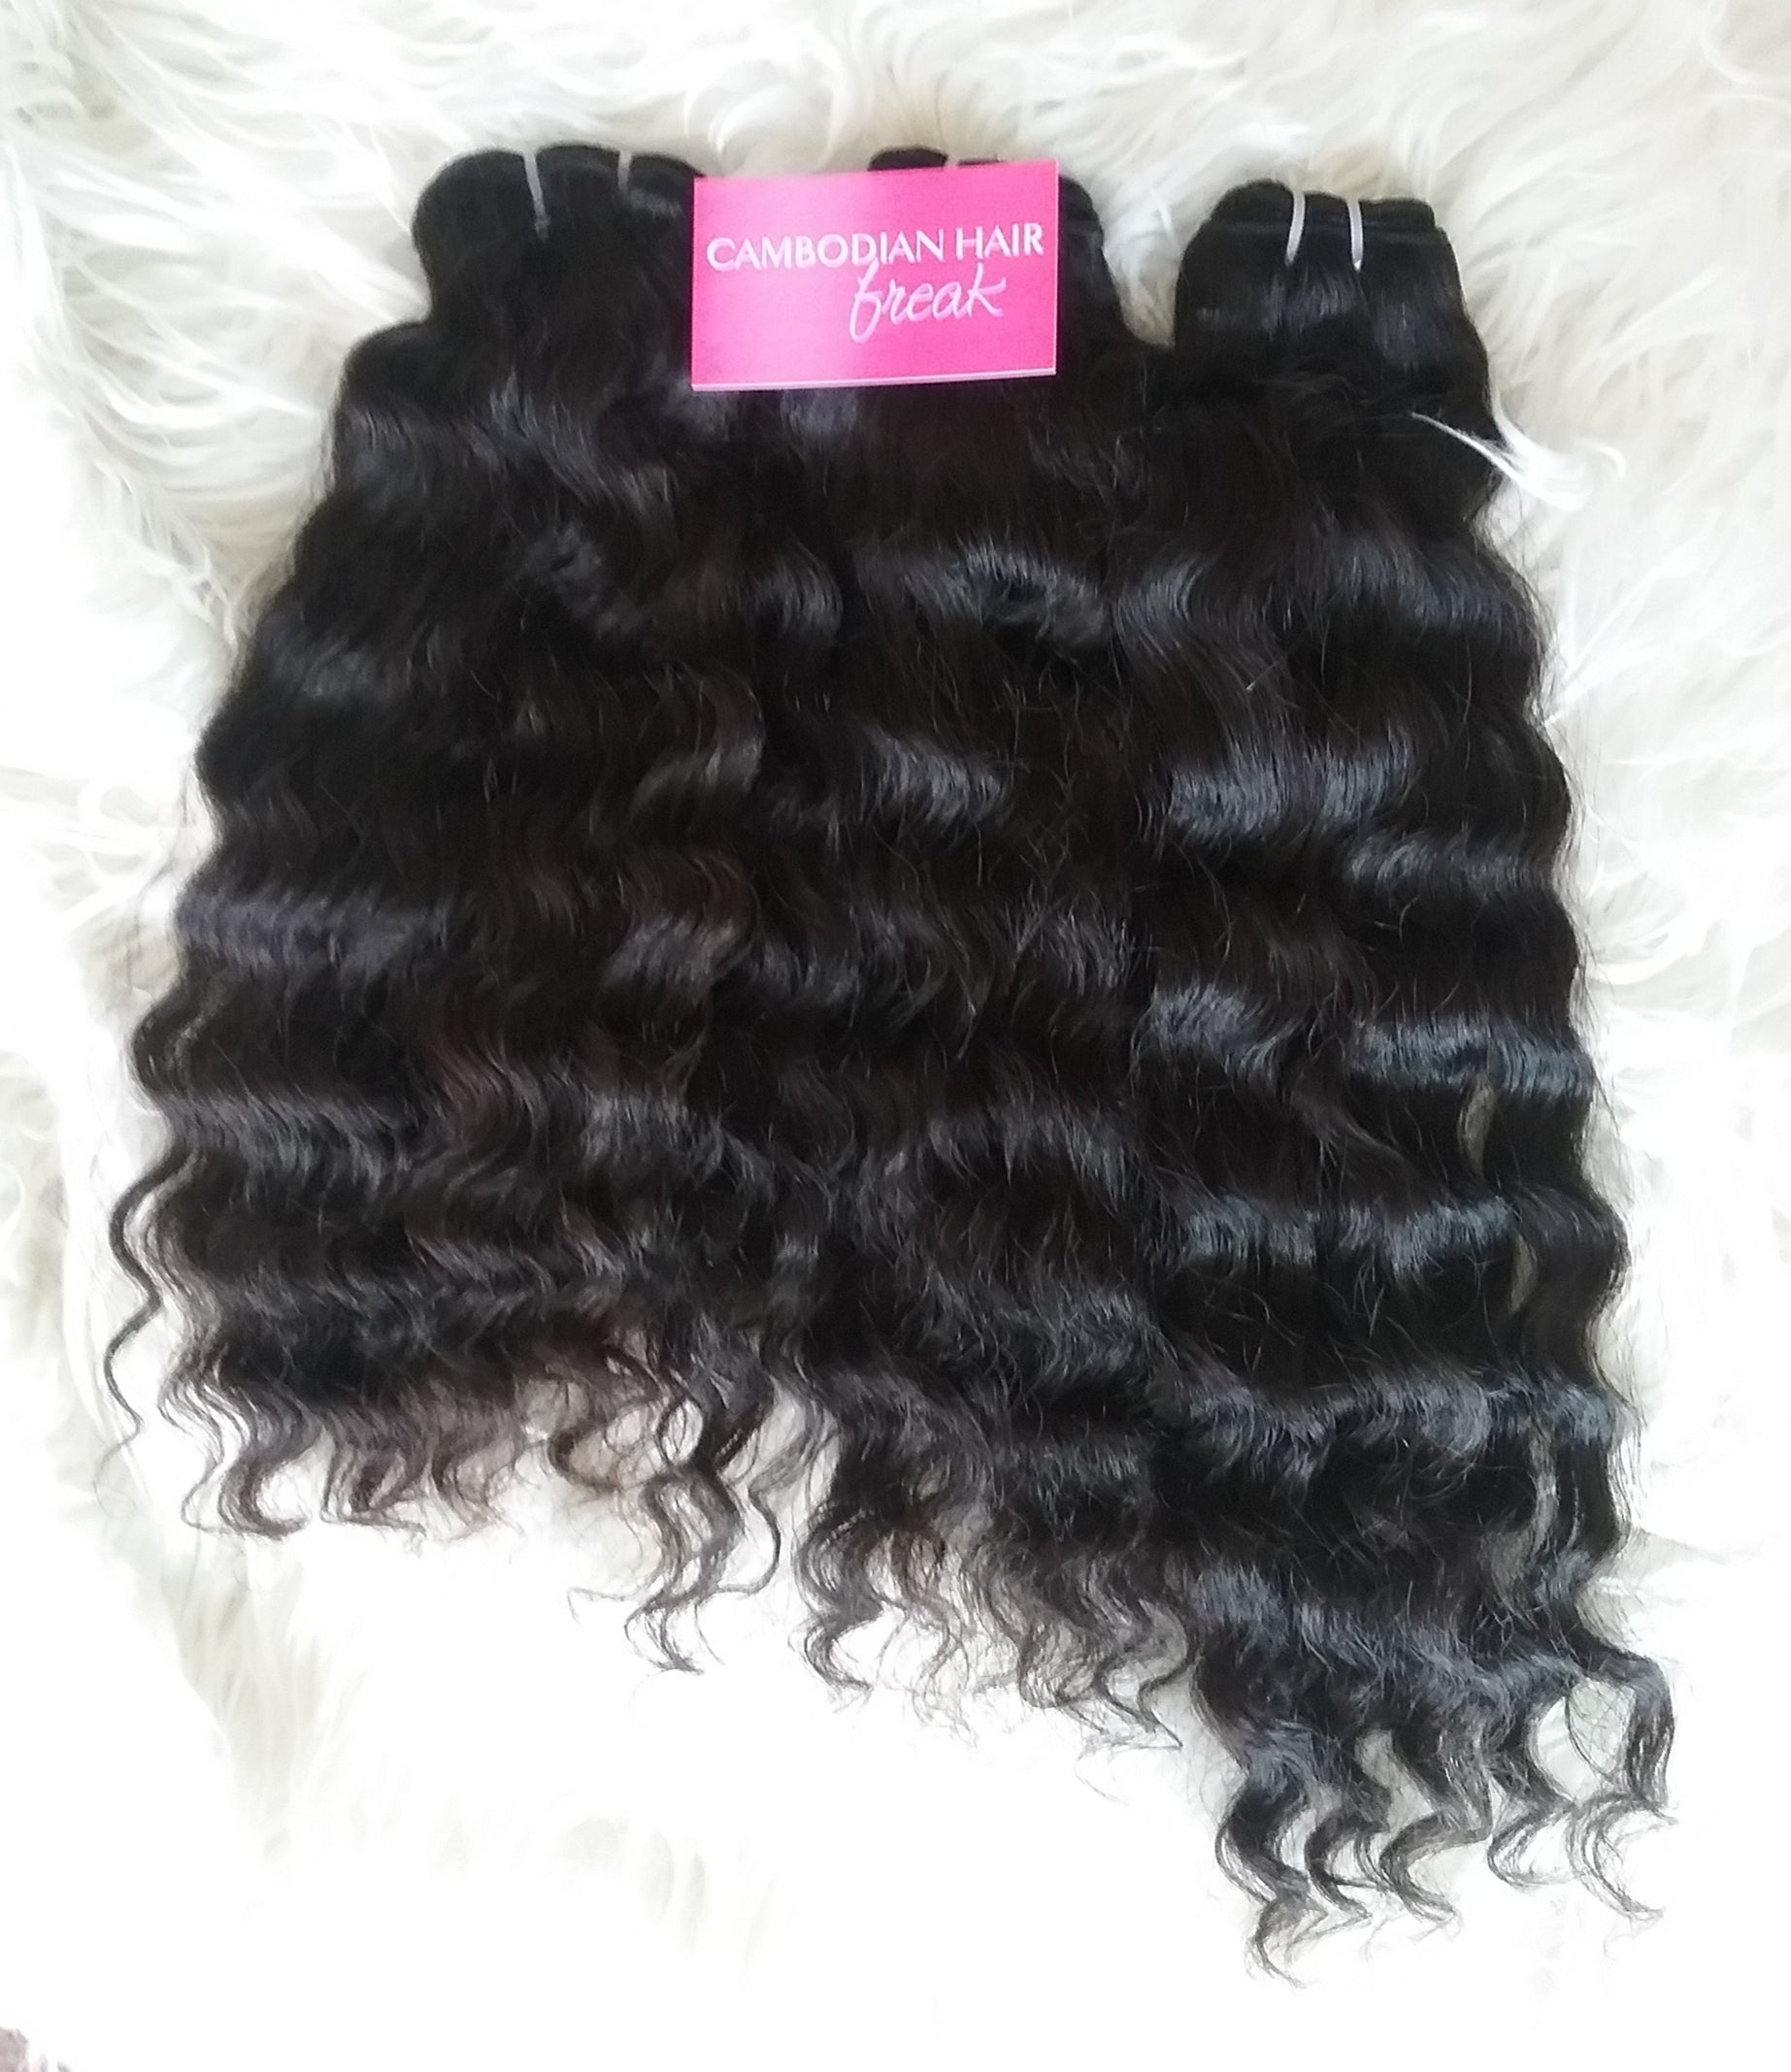 Cambodian Deep Wave Hair Extensions | Bundle Deal - Cambodian Hair Freak LLC